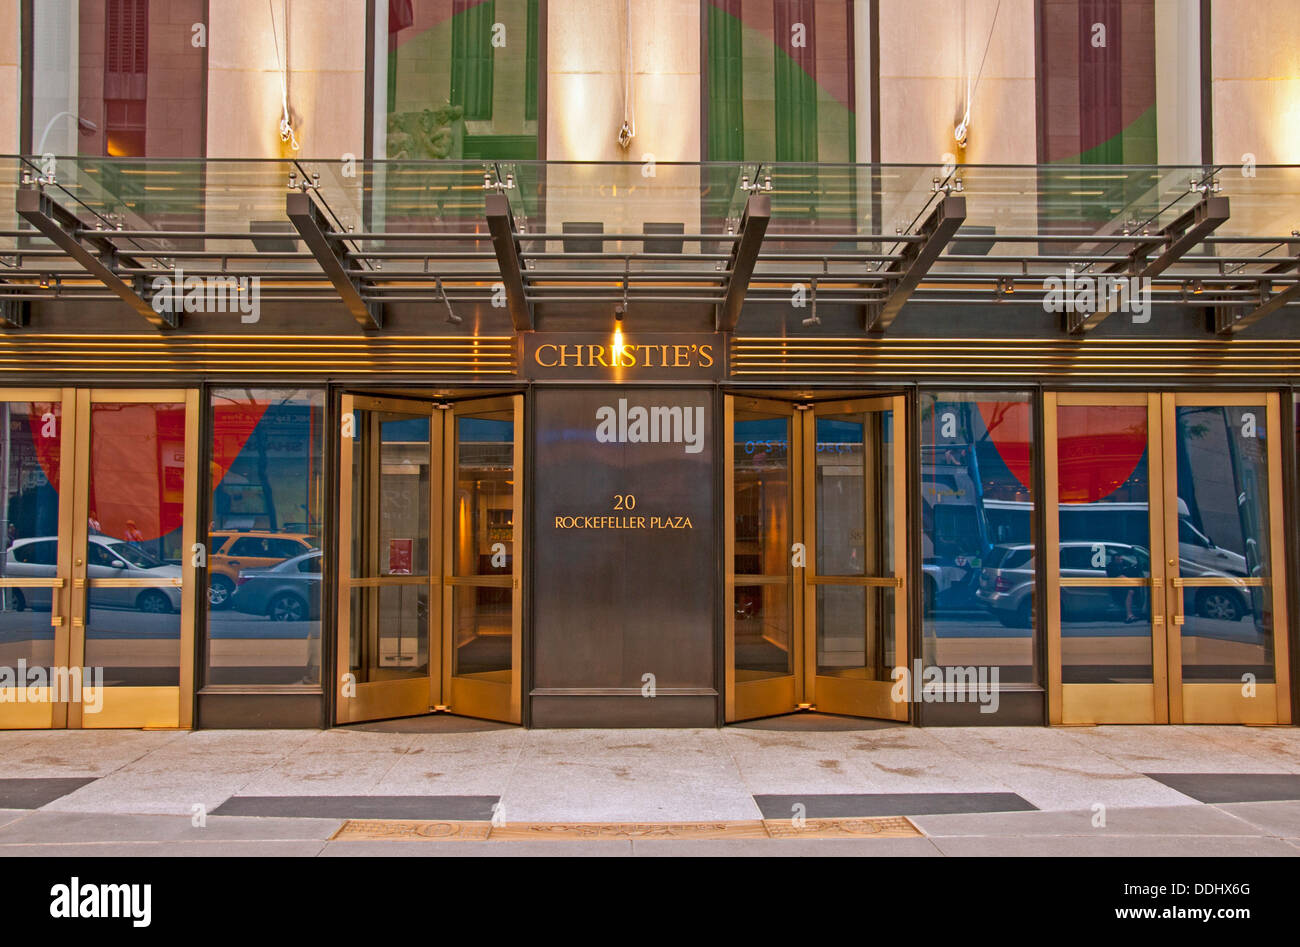 Christie's auction house, Rockefeller Plaza - Stock Image